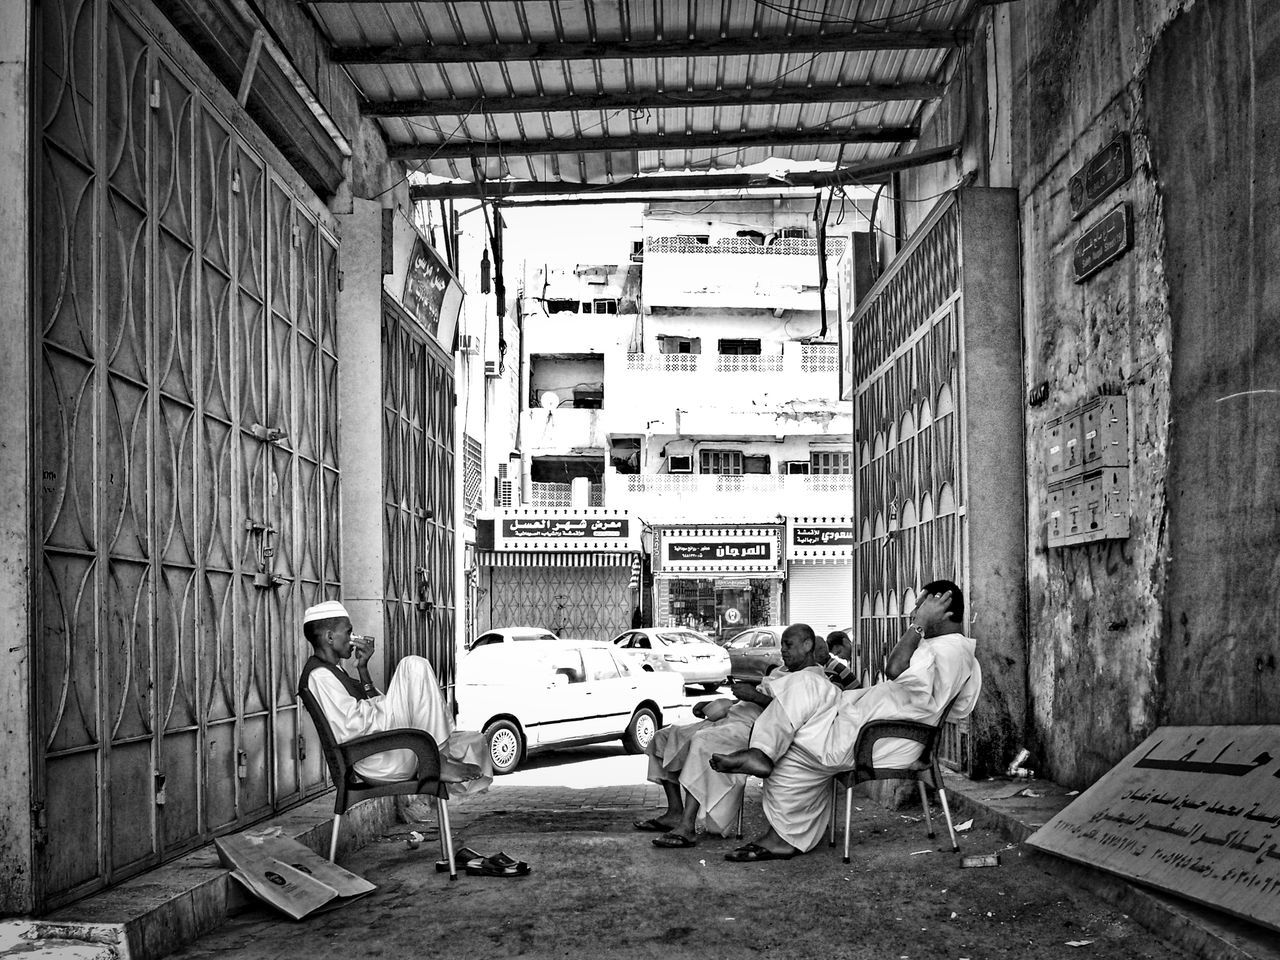 Arab Arabic Arabic Style Black & White City Life City Street EyeEm Best Shots - Black + White Hanging Around Jeddah Leisure Time Monochrome Photography Old Fashioned Old Town People People And Places People Photography Portrait Saudi Arabia Simple Moment Sitting Street Photography Streetphotography Togetherness Urban Exploration Urban Lifestyle